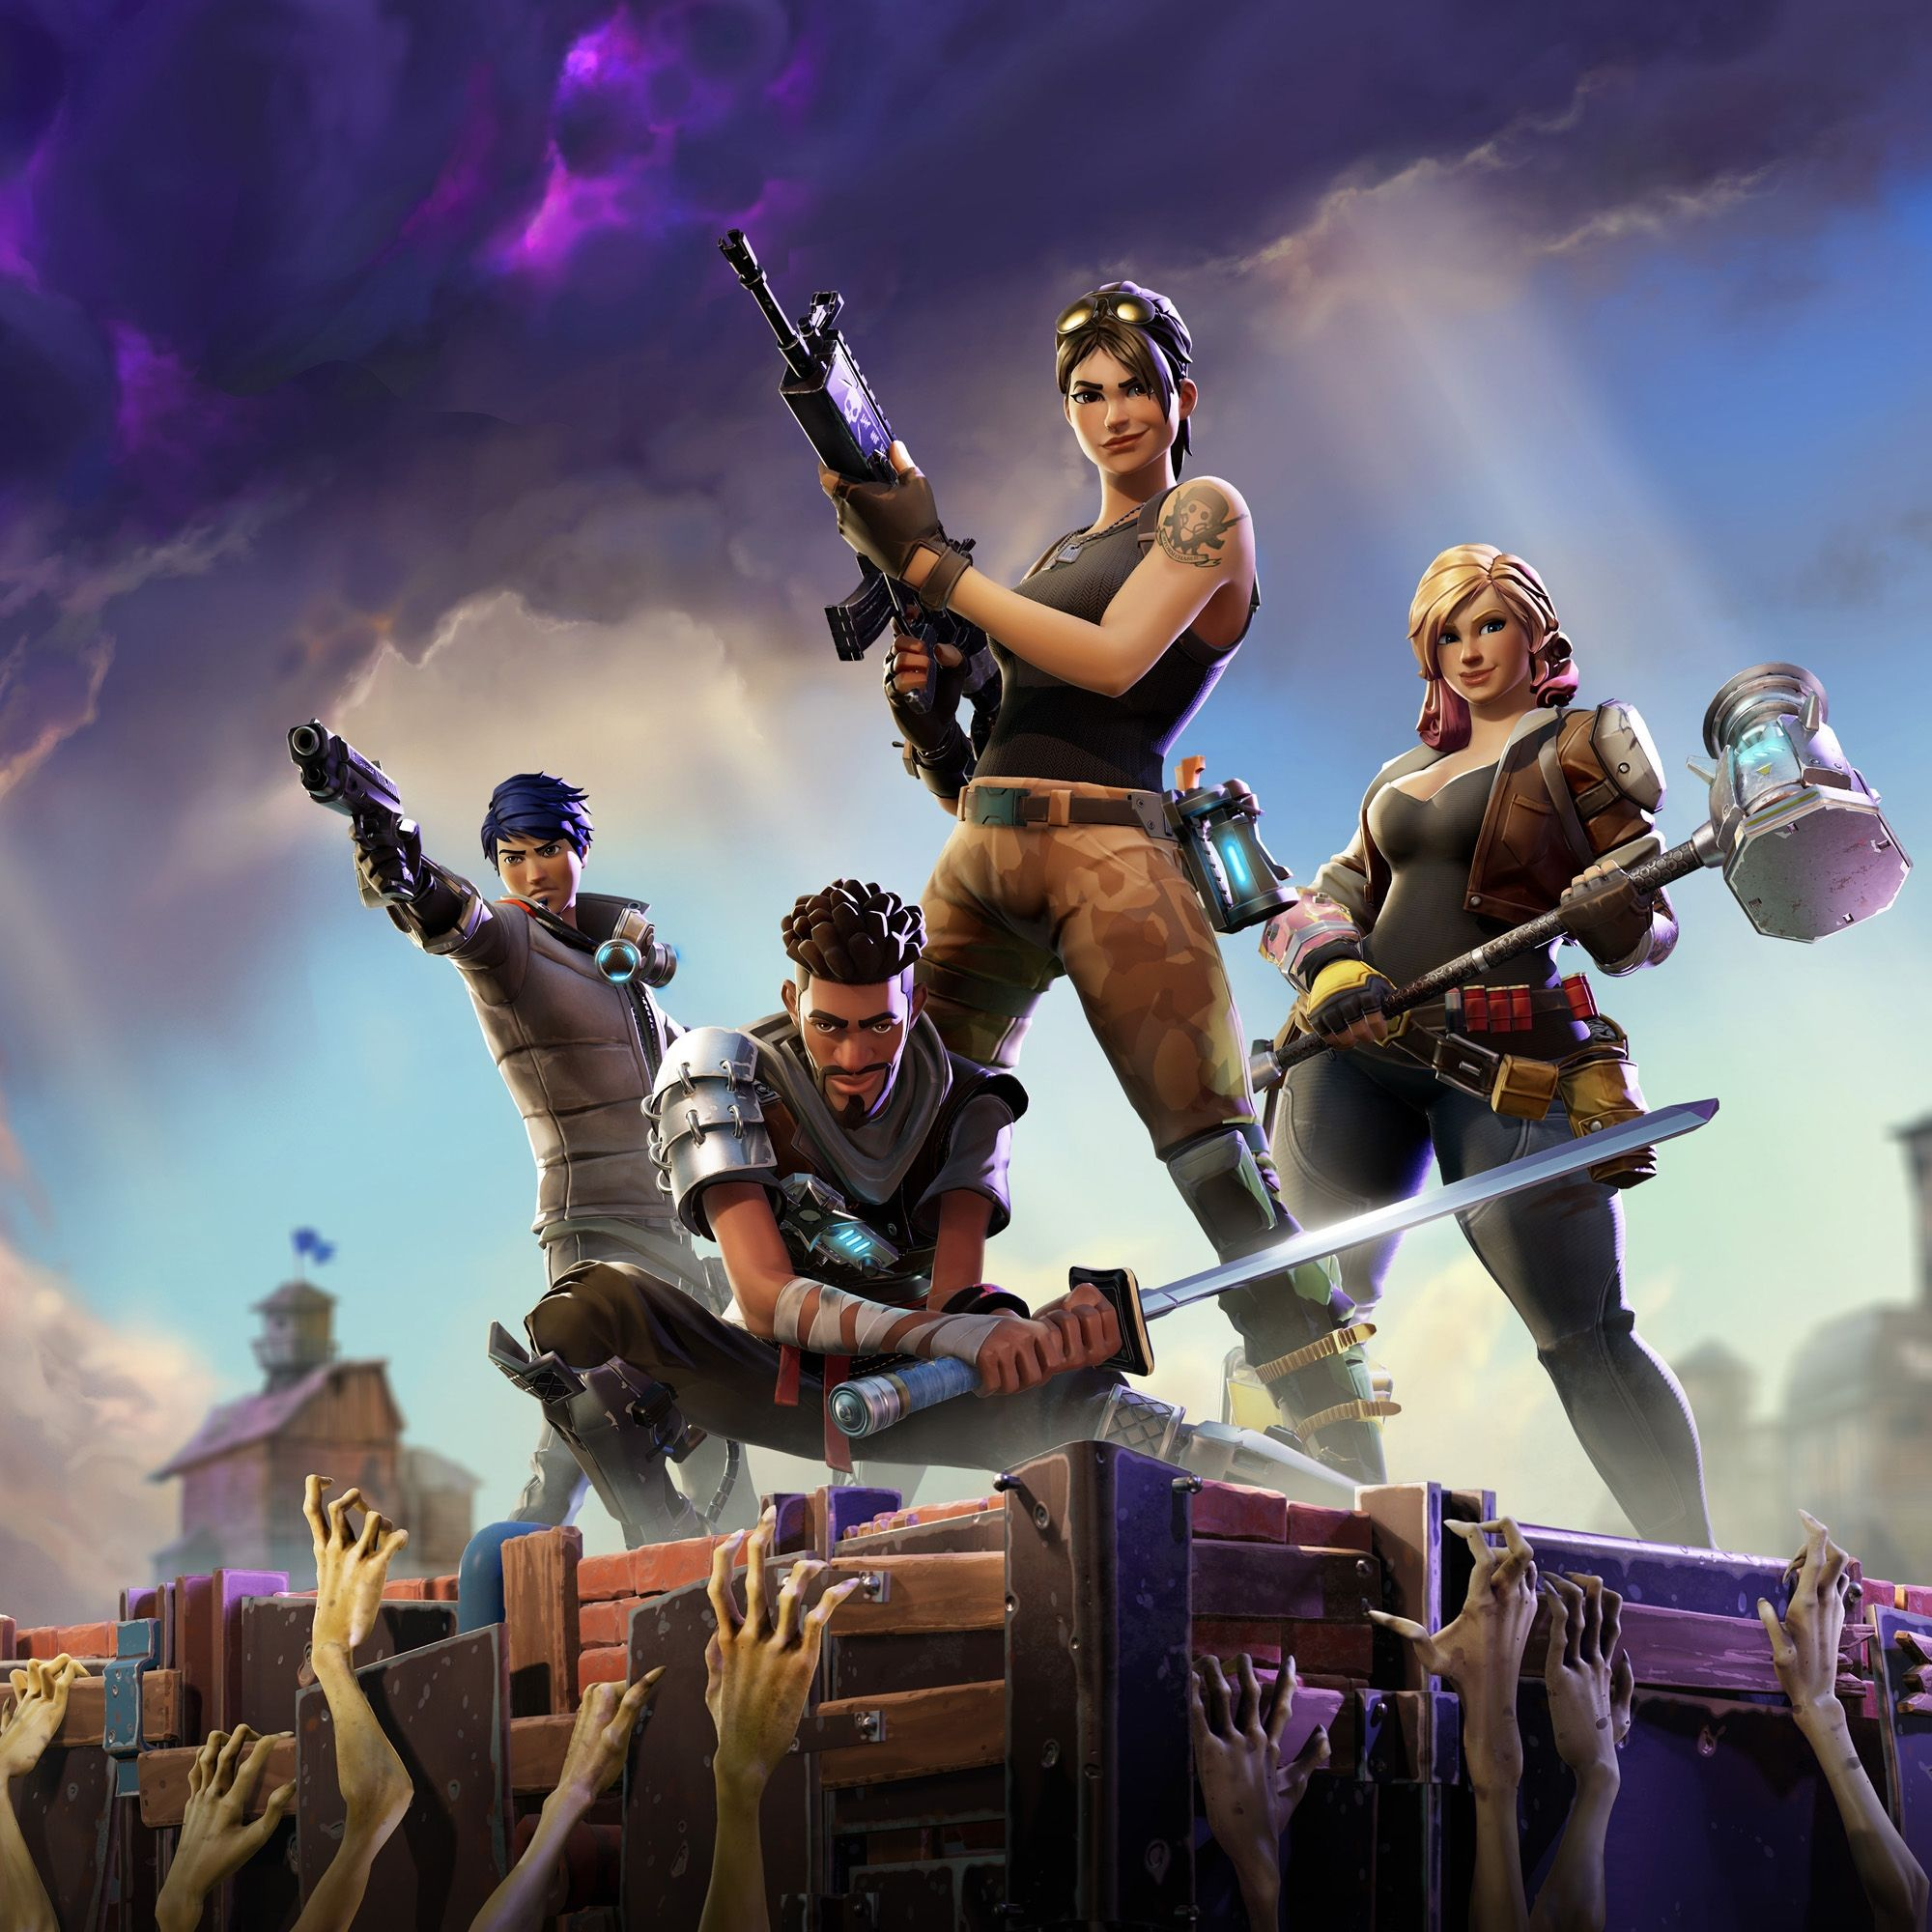 Fortnite Is The Best Game Ever Pls Share This New And Upcoming Youtuber Lets Gooo Https Www Youtube Com Watch V Fortnite Bad News Video Game News